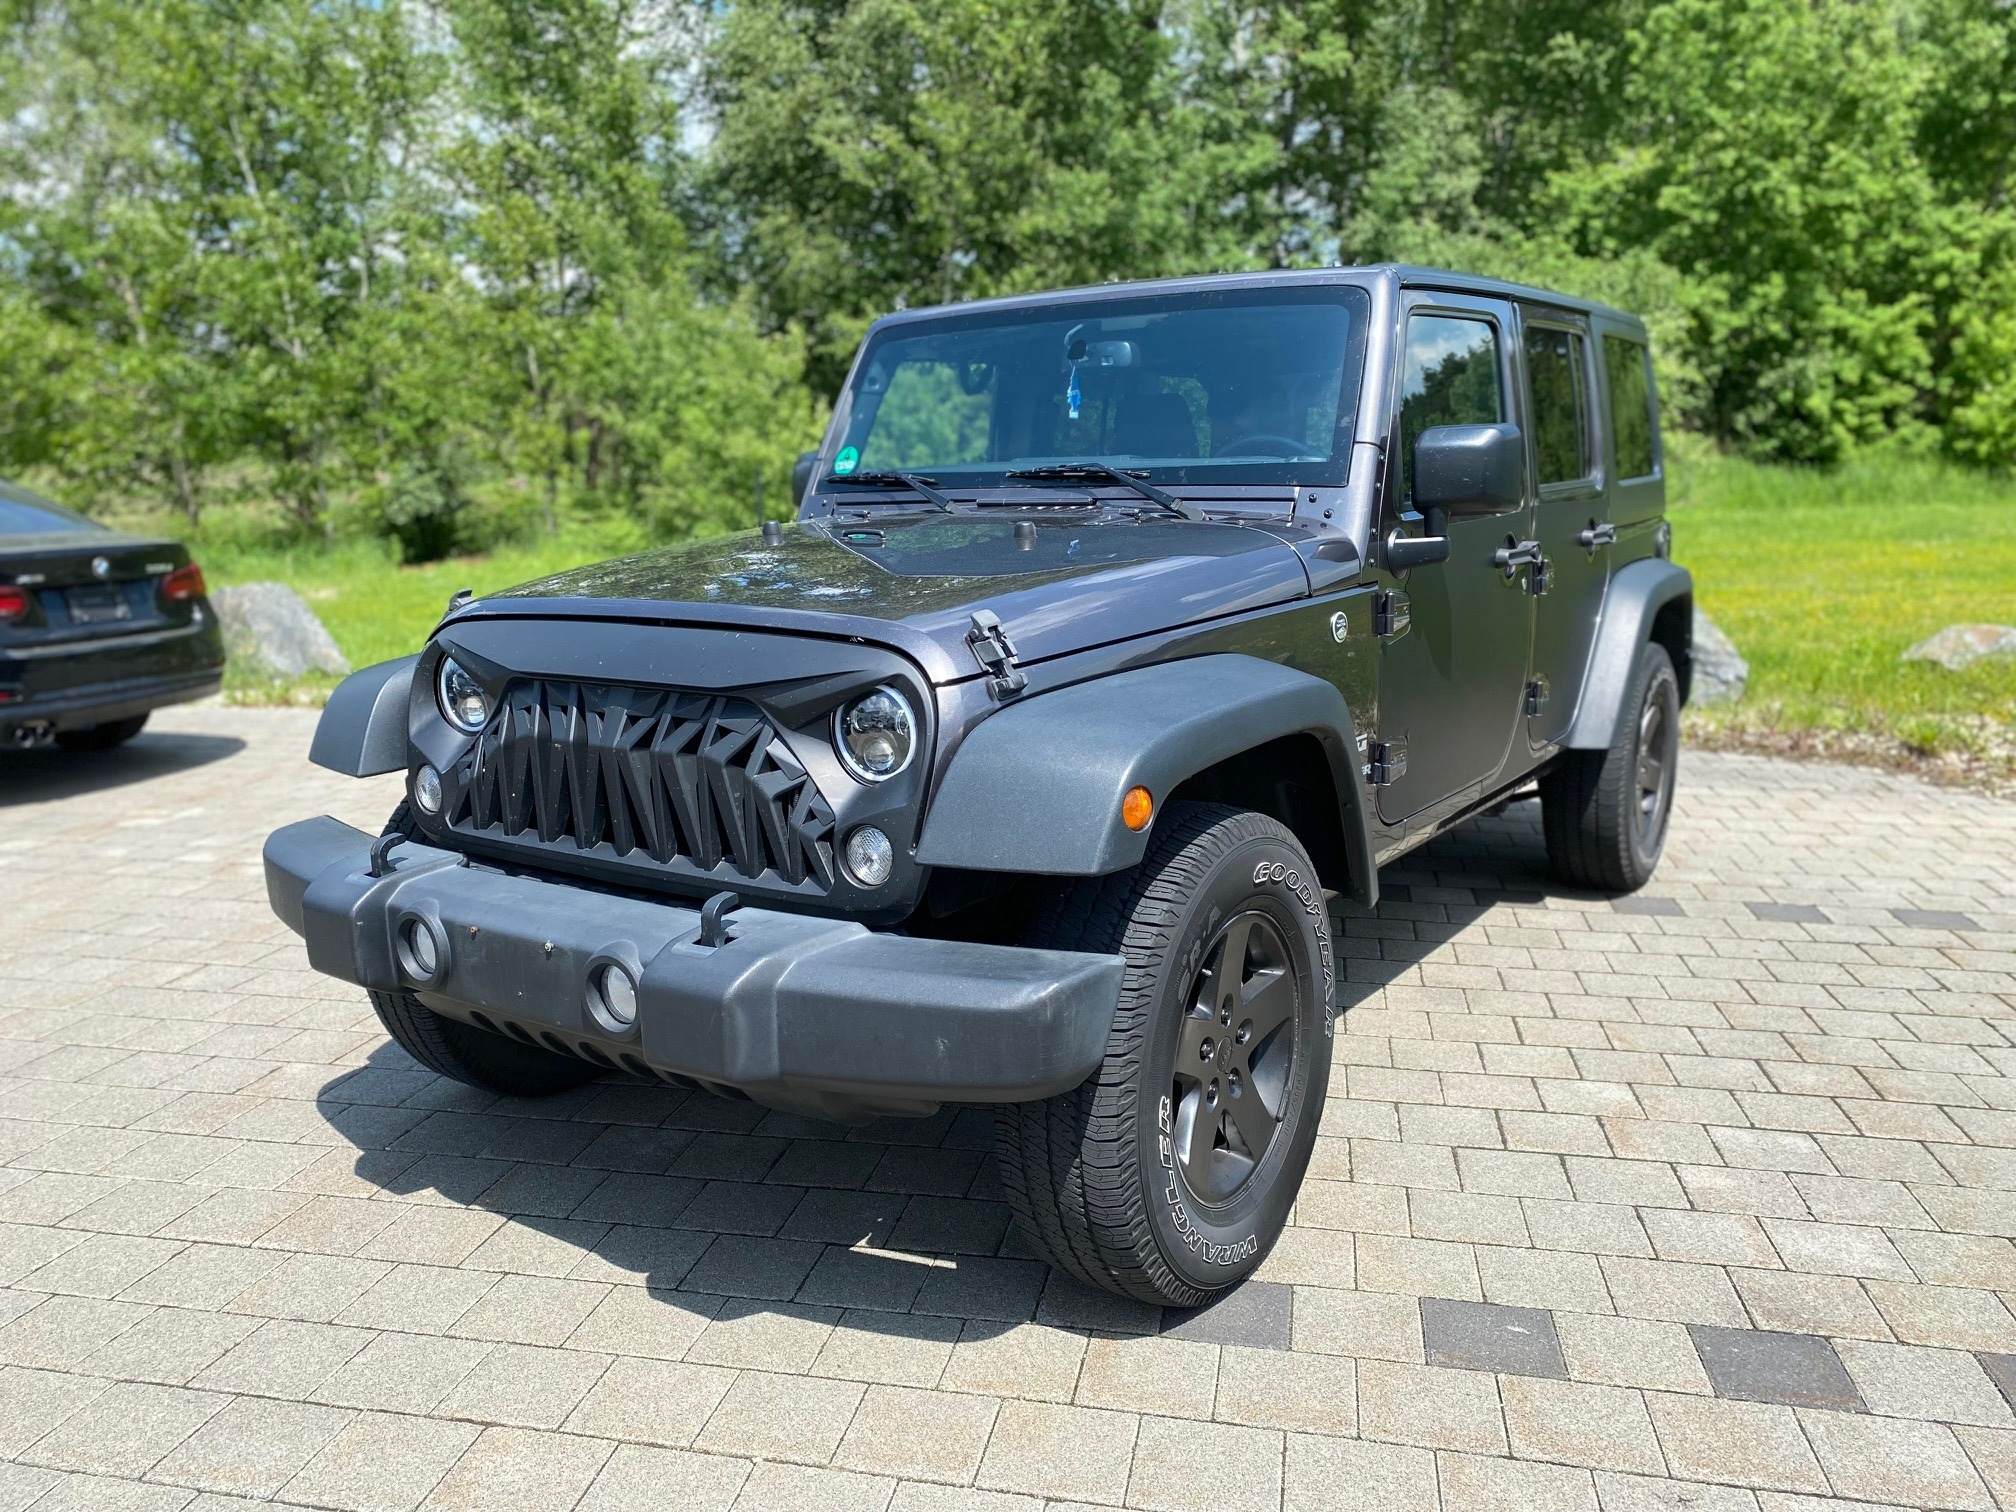 2016 Jeep Wrangler Unlimited Sport </br>as low as </br>$259 per paycheck